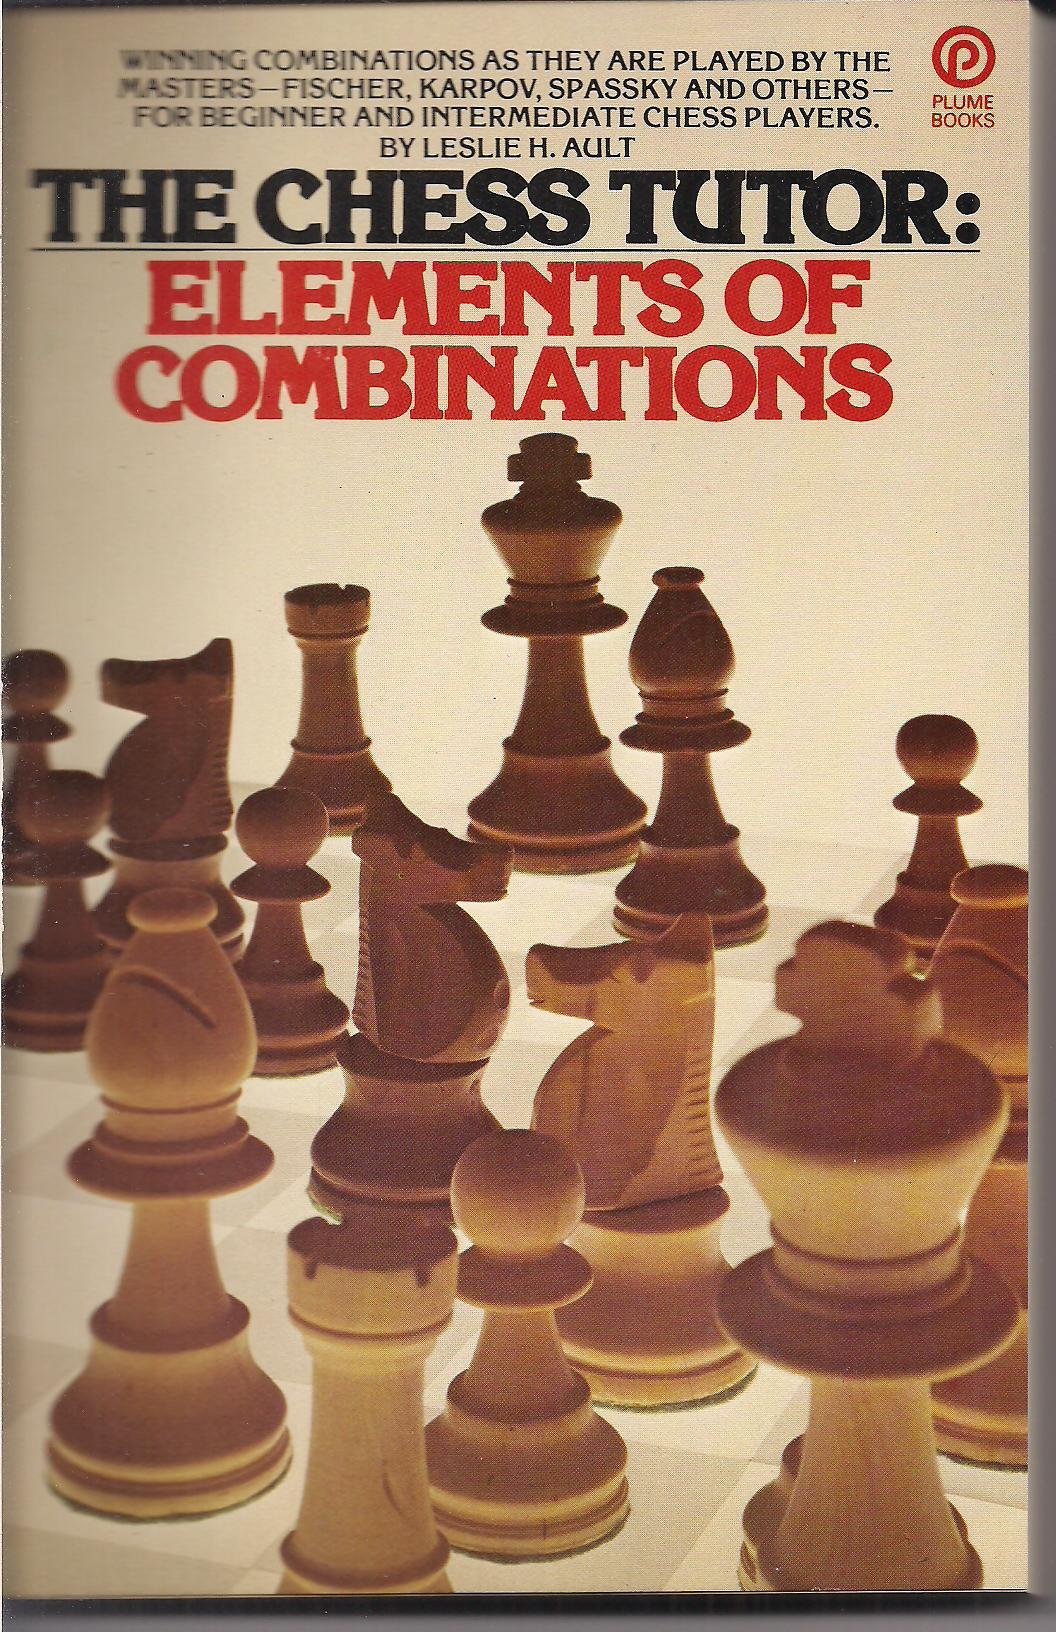 Leslie Ault_The Chess Tutor_Elements of Combinations 8161j-5lnmL